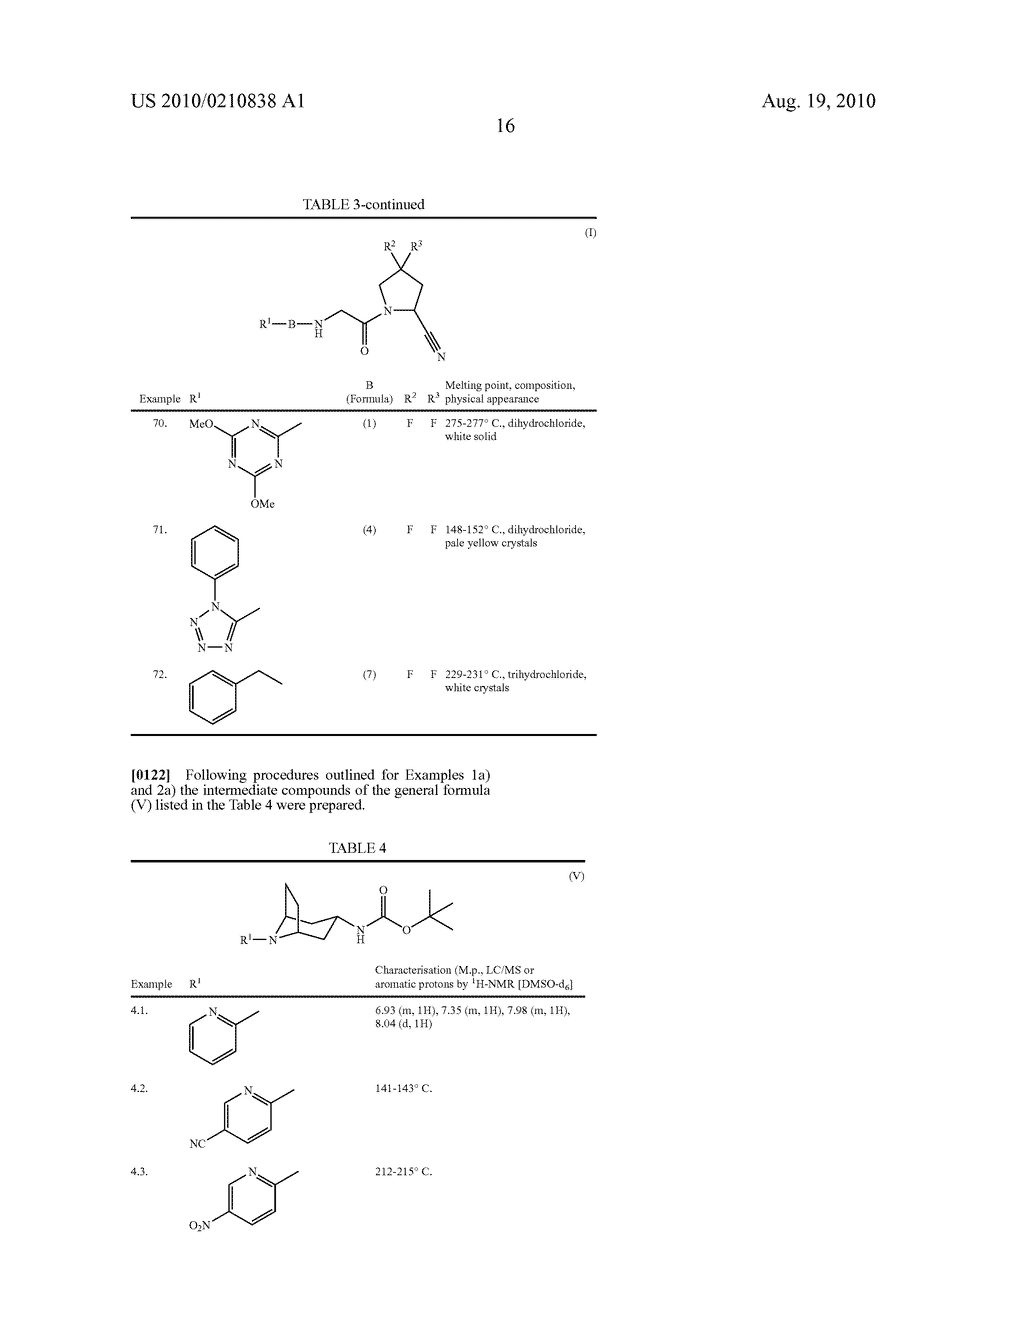 FLUOROPYRROLIDINES HAVING DIPEPTIDYL PEPTIDASE ENZYME INHIBITORY ACTIVITY - diagram, schematic, and image 20